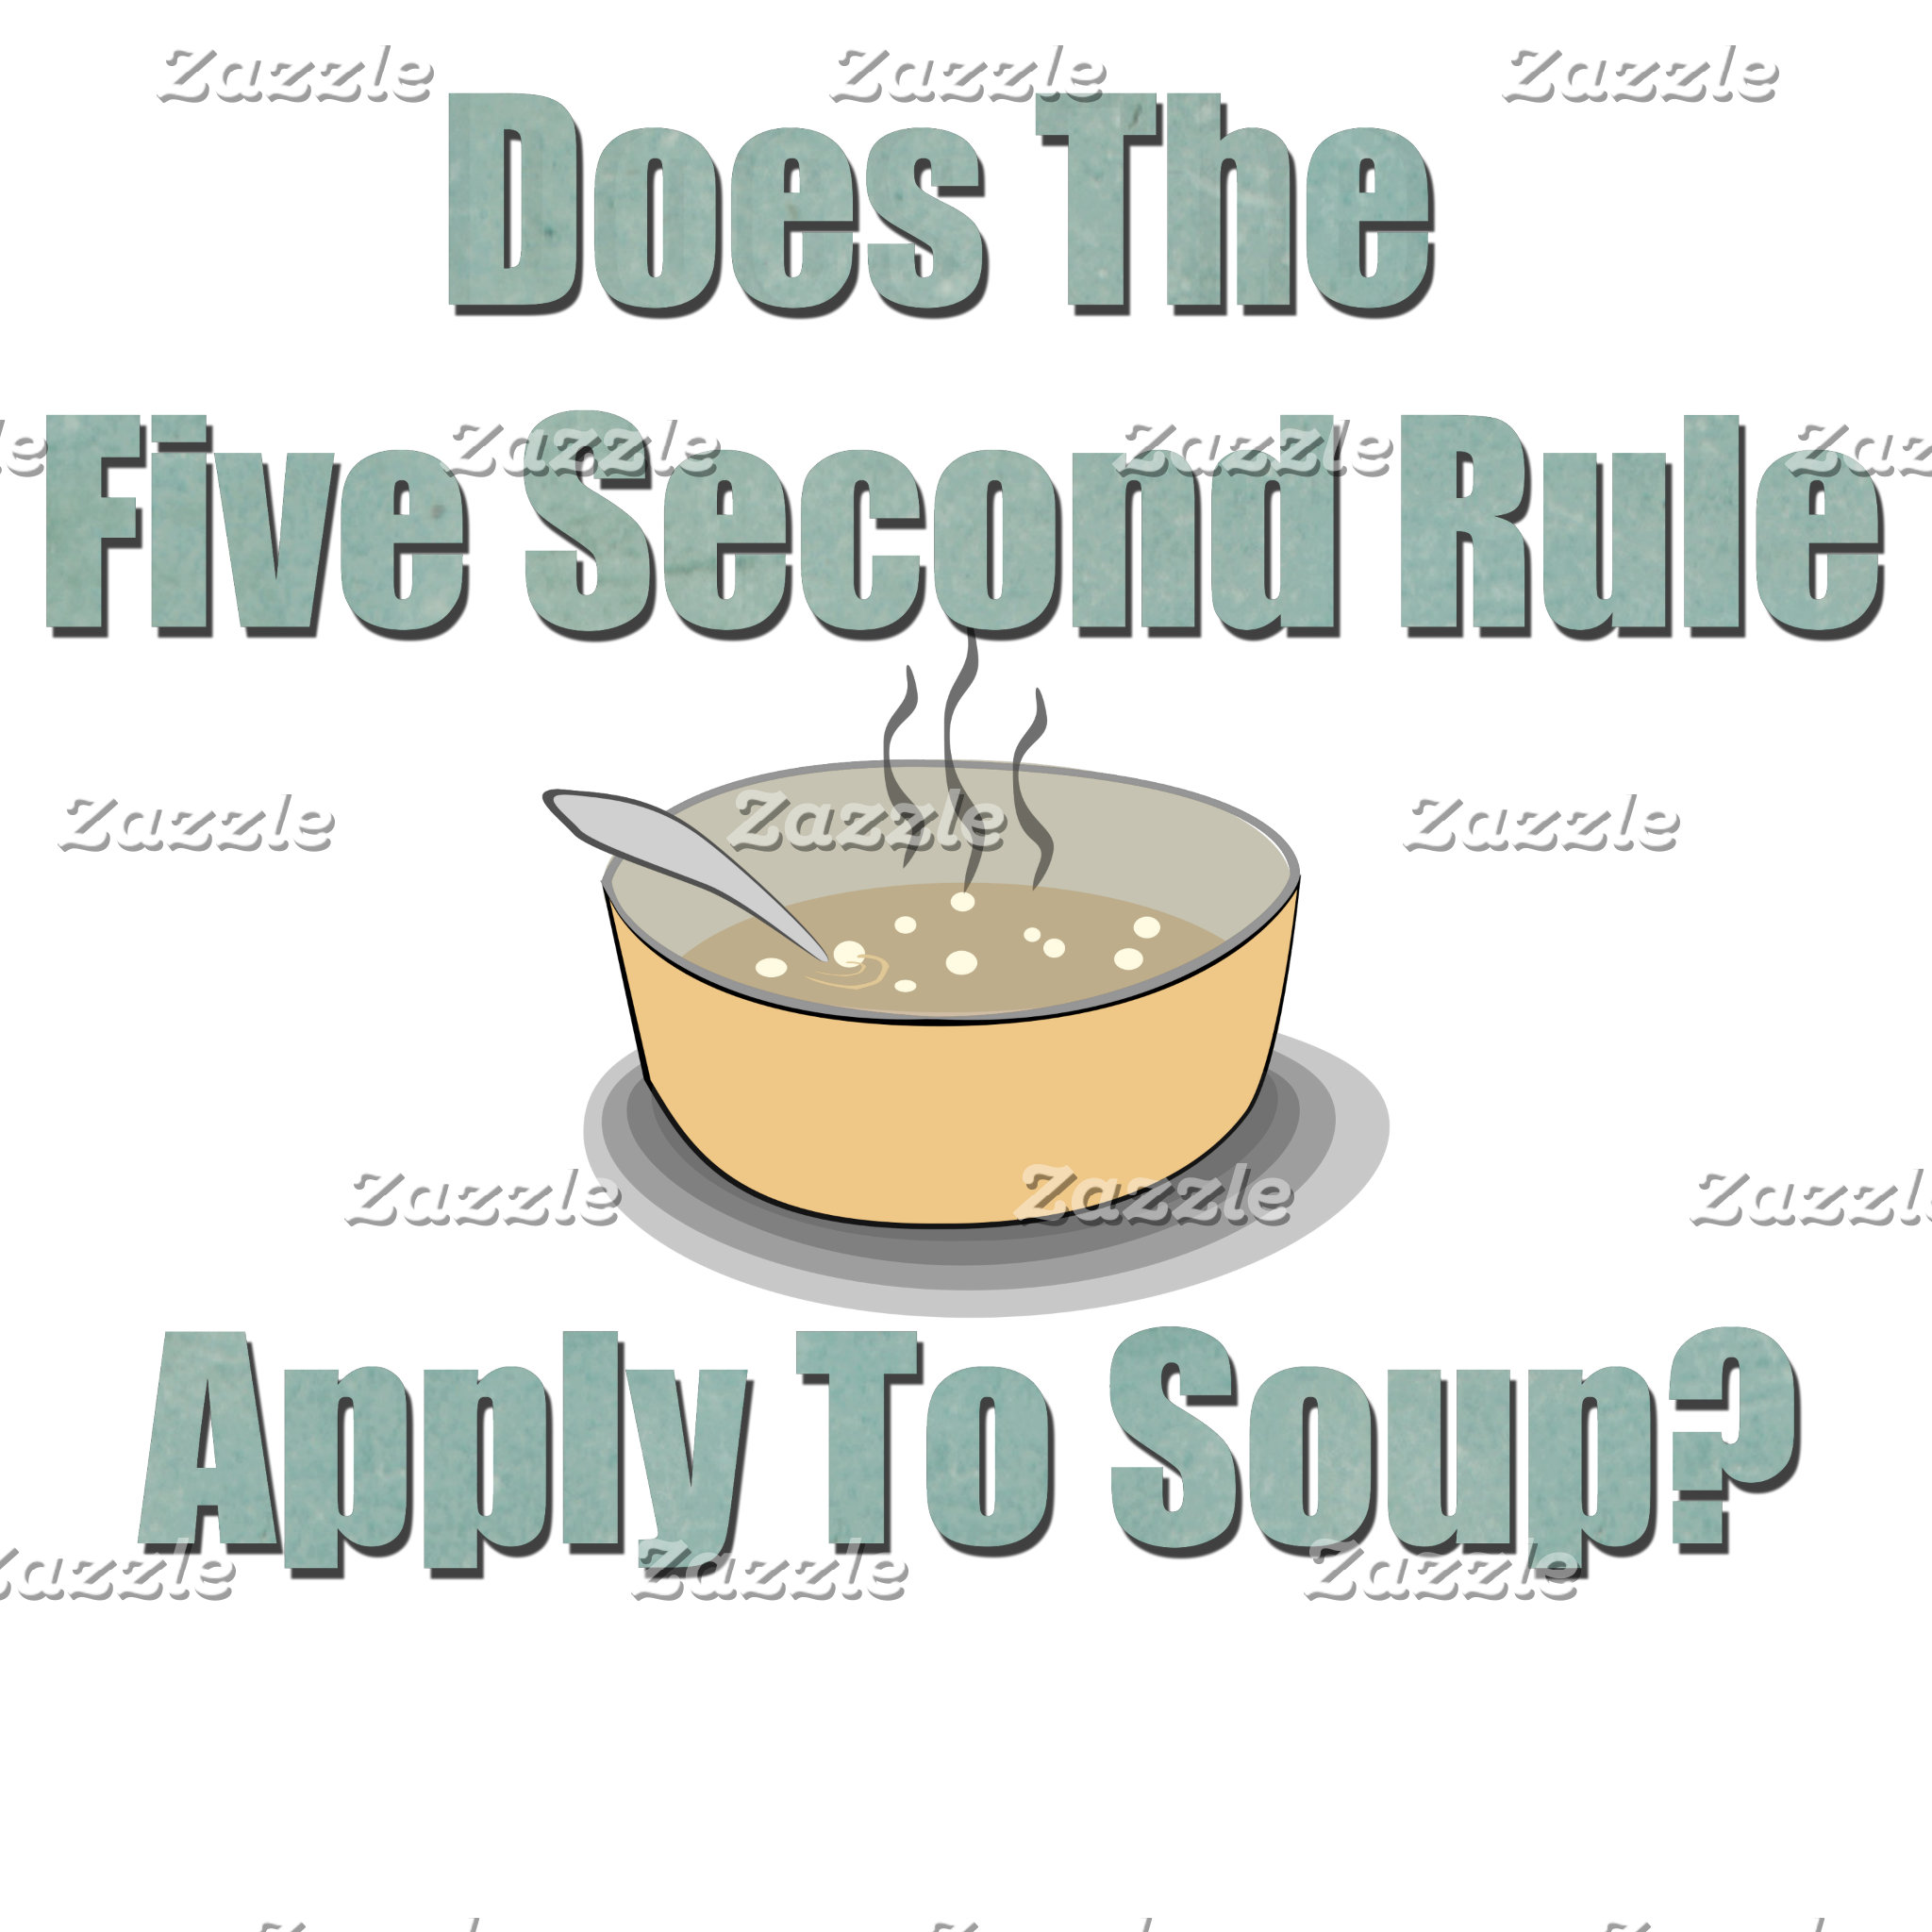 Funny Five Second Rule Soup Joke